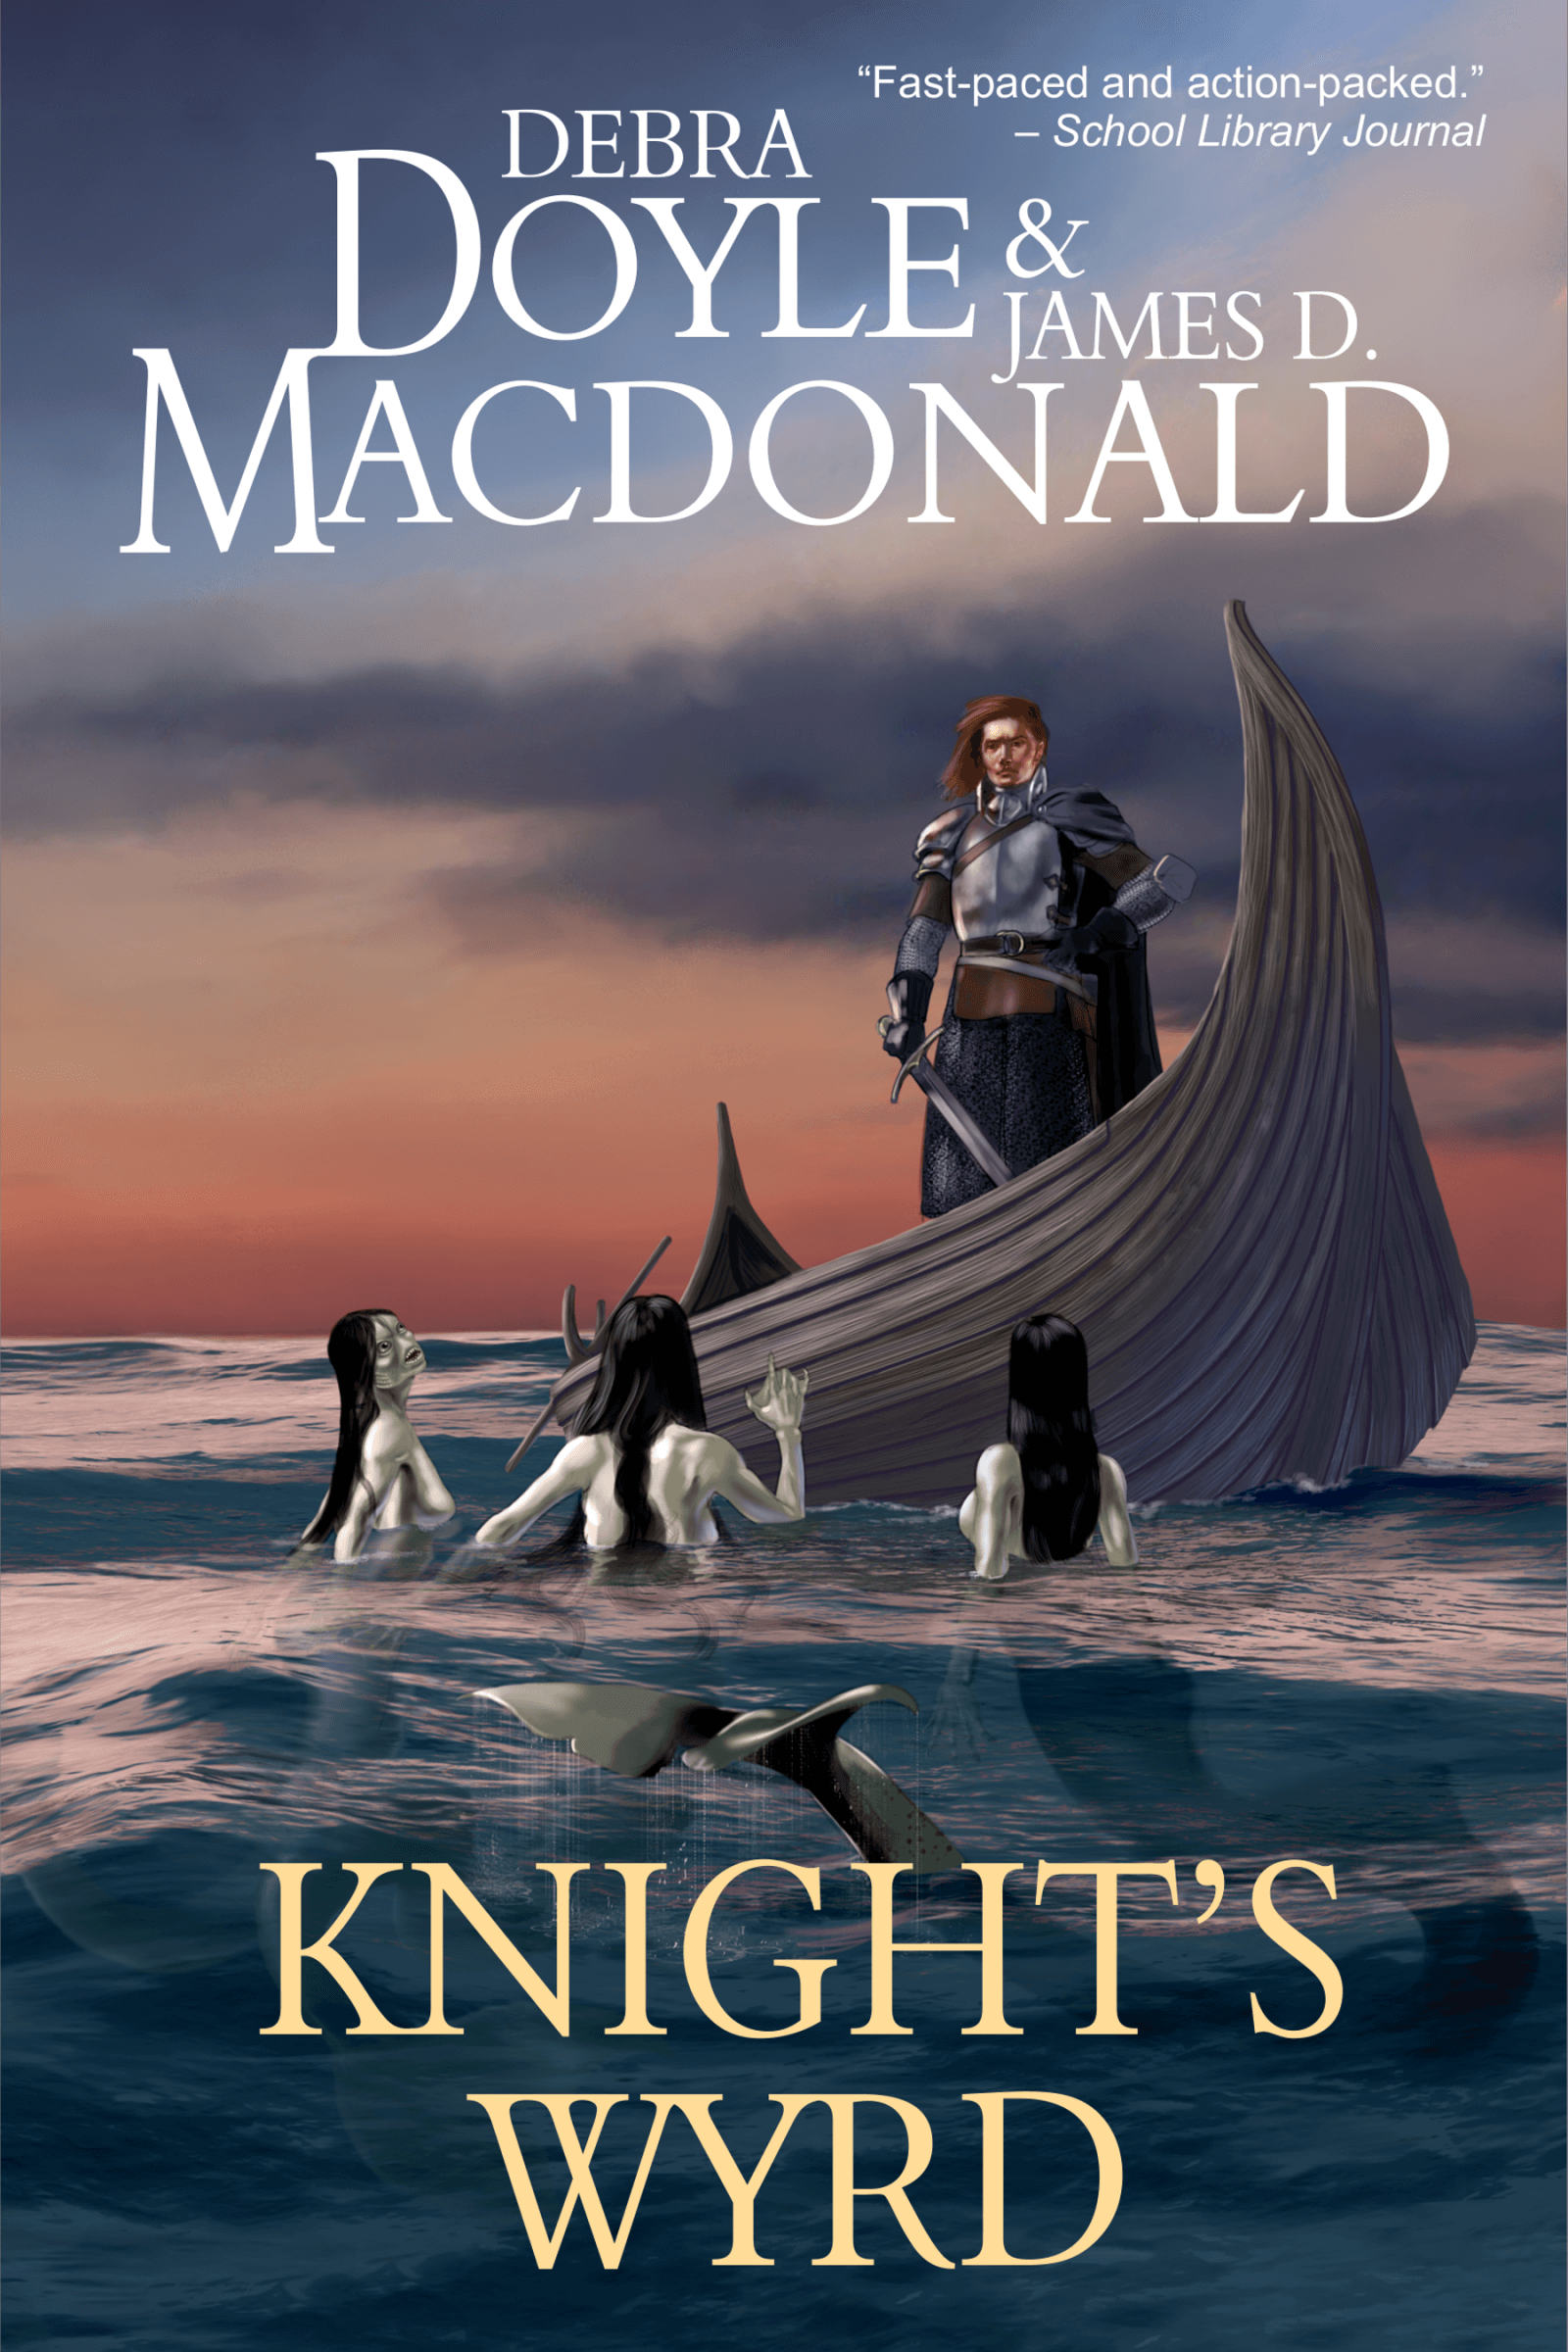 Knight's Wyrd book cover design by Corvid Design